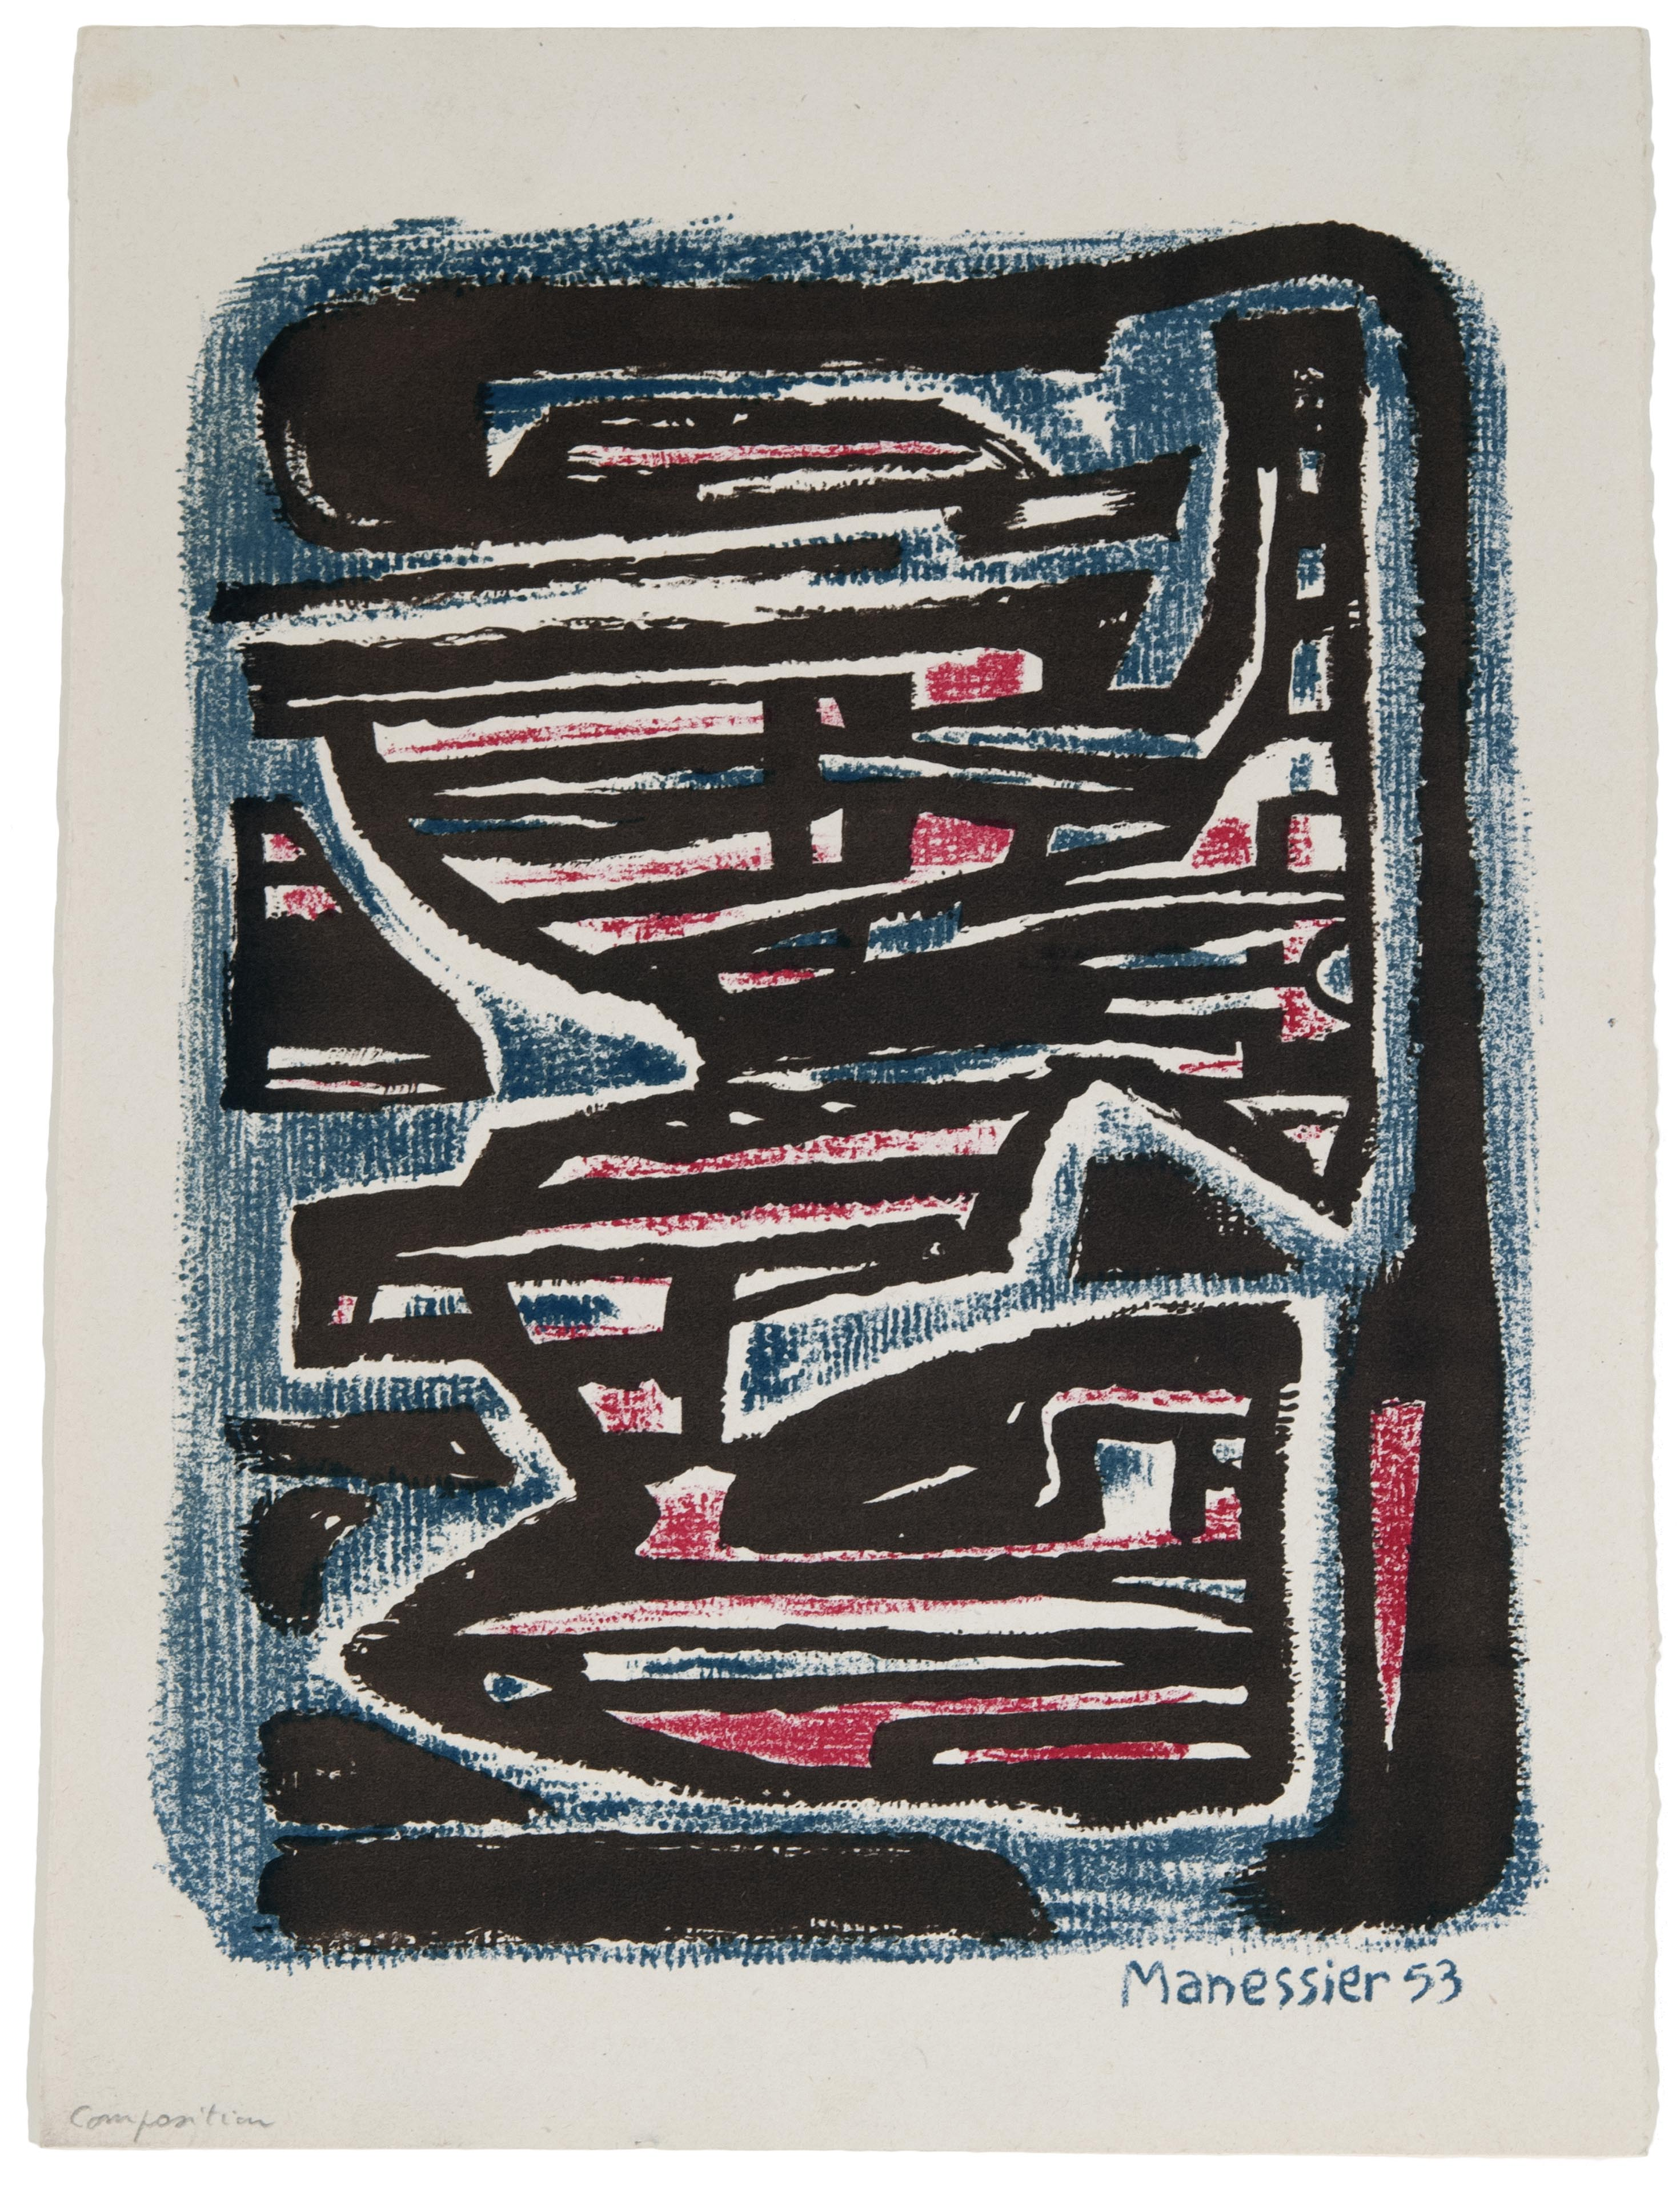 Alfred Manessier, Compositon, 1953